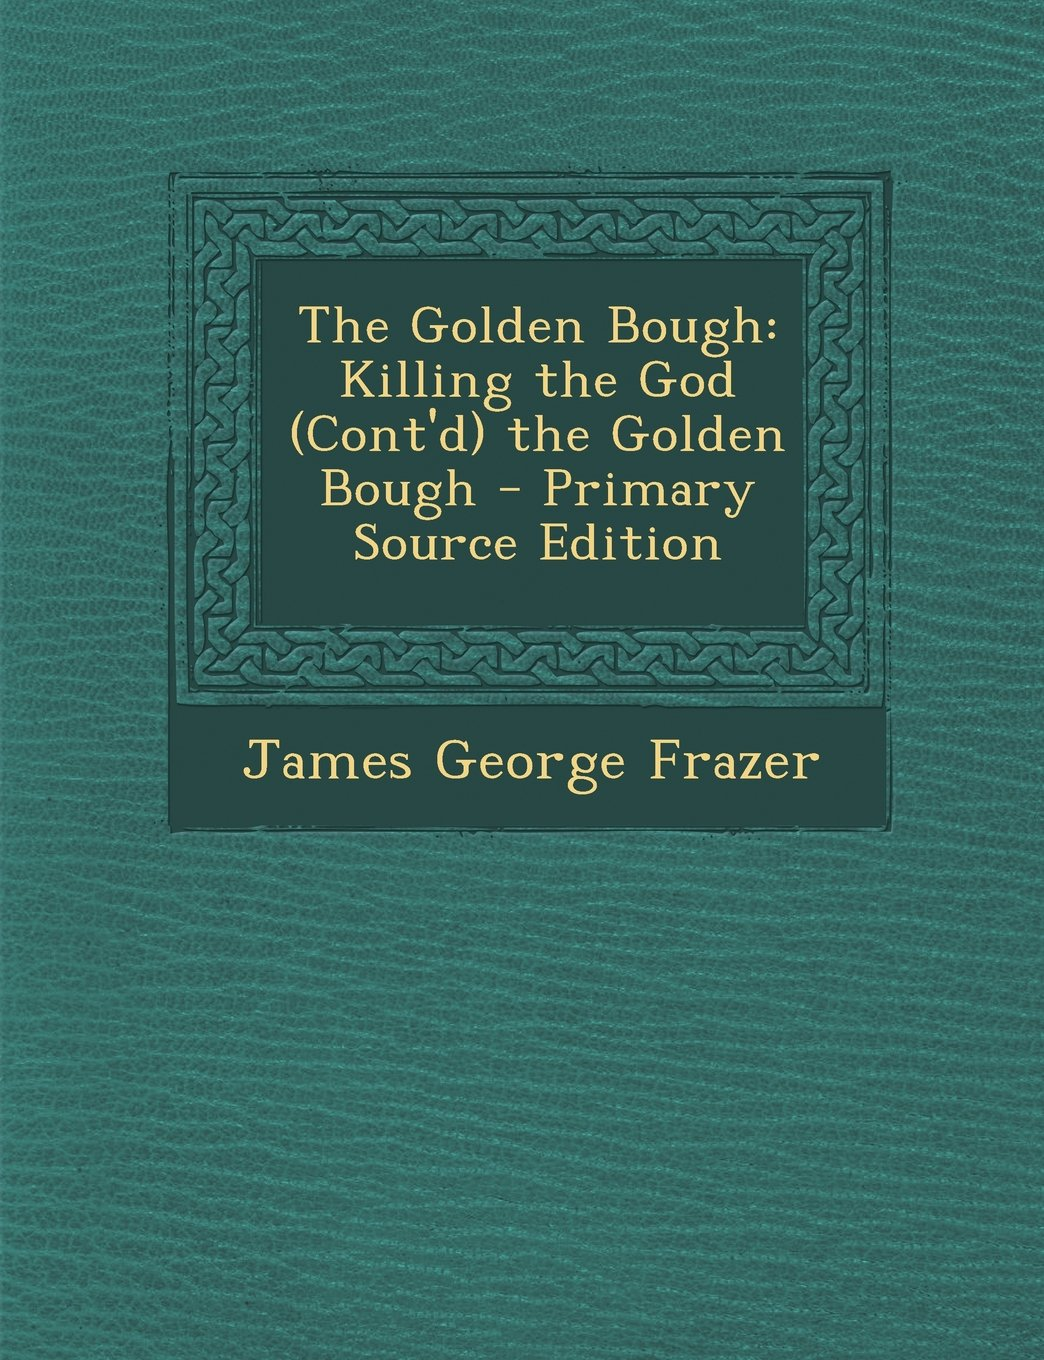 Golden Bough: Killing the God (Cont'd) the Golden Bough pdf